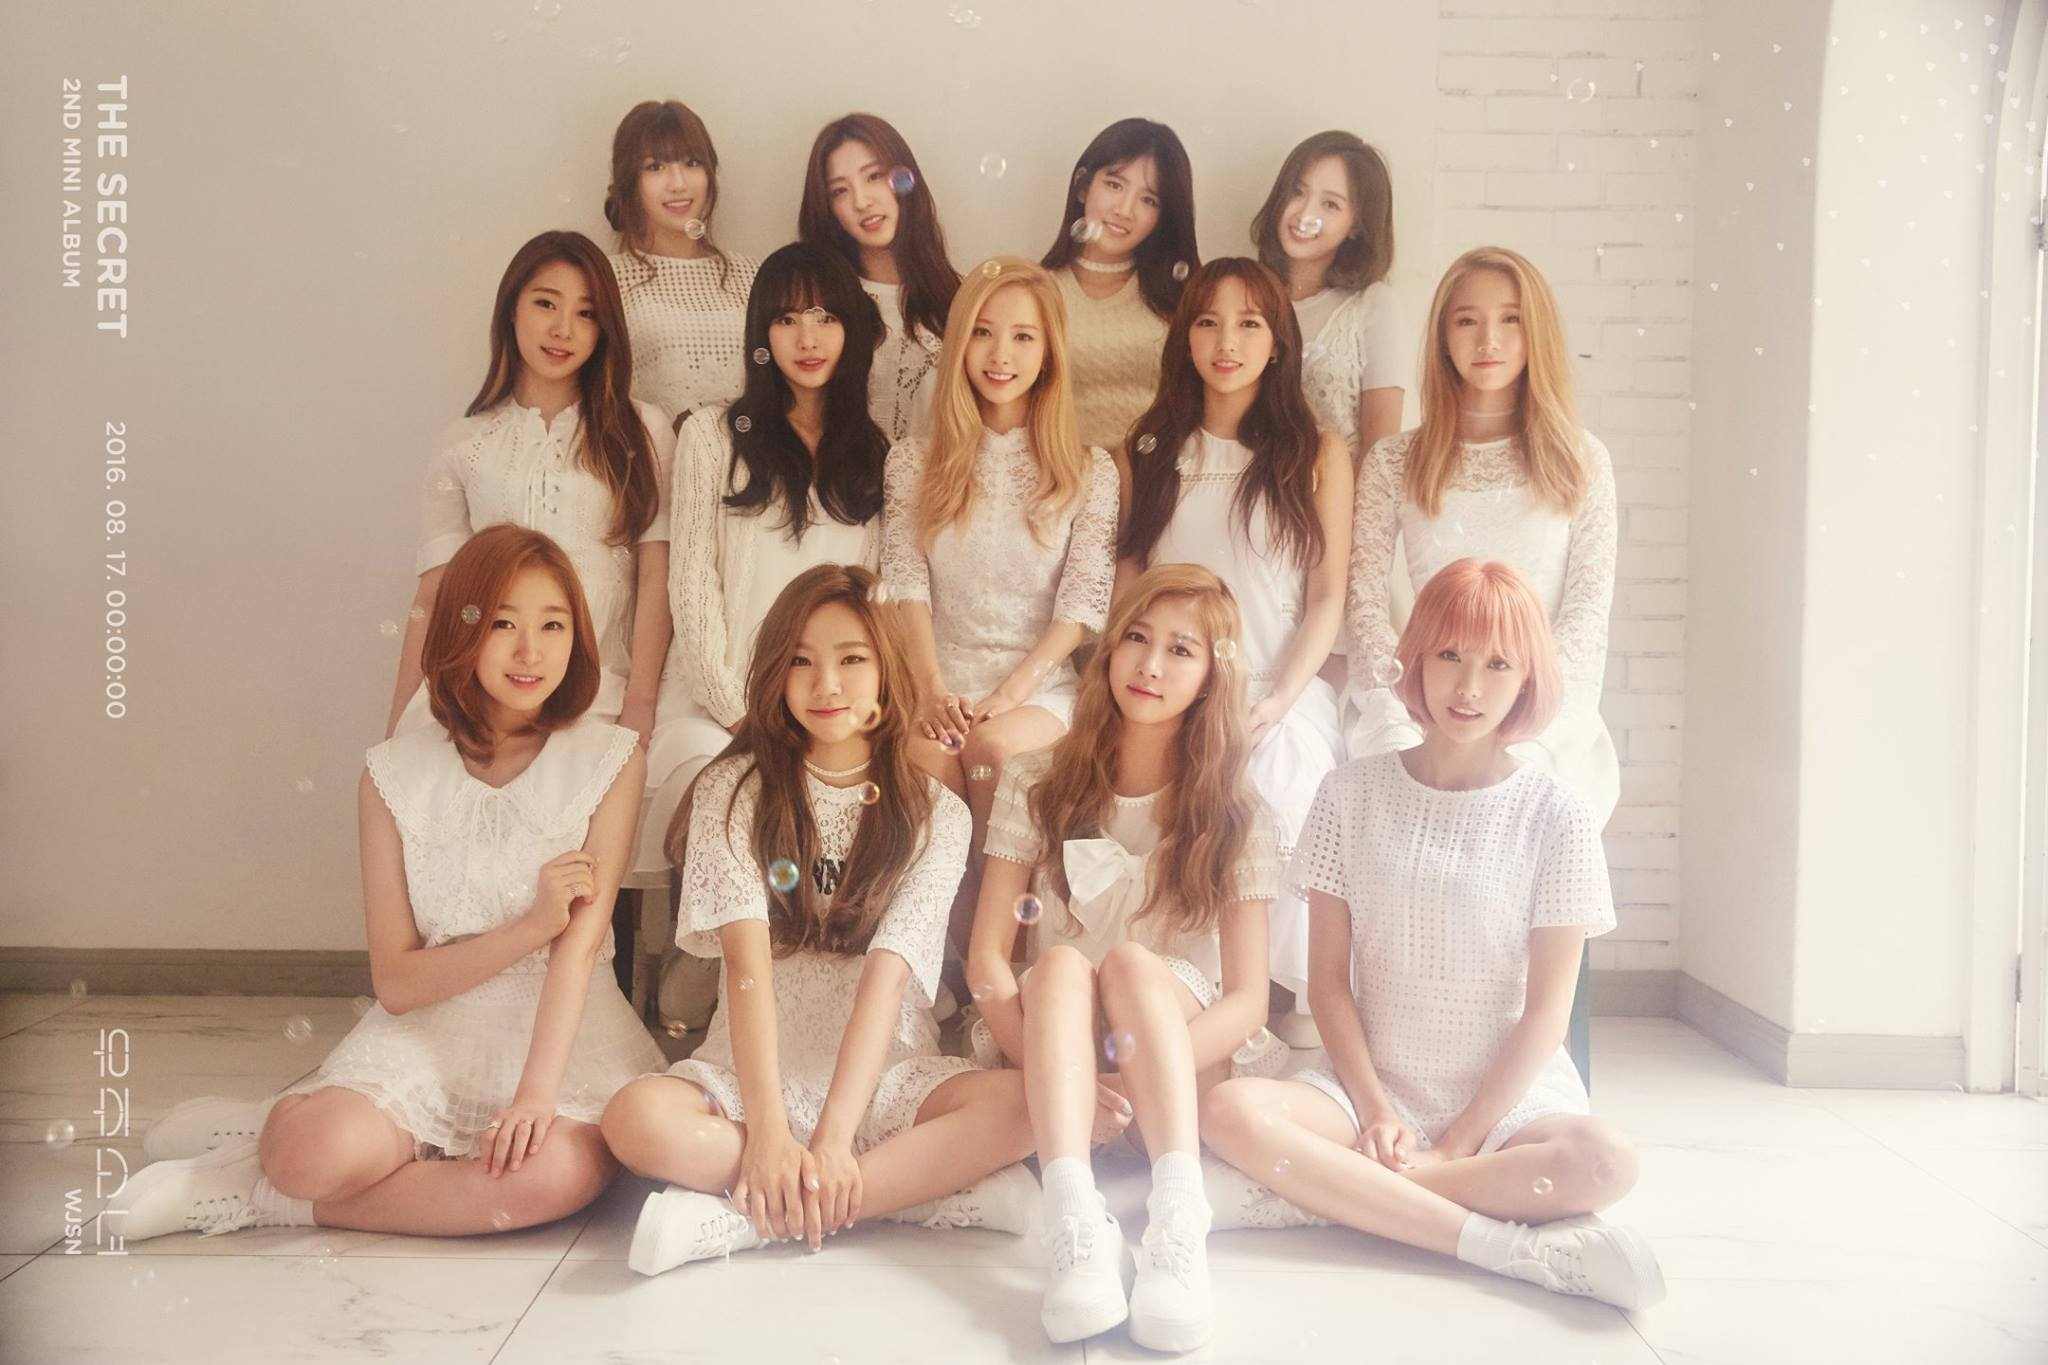 cosmic girls group